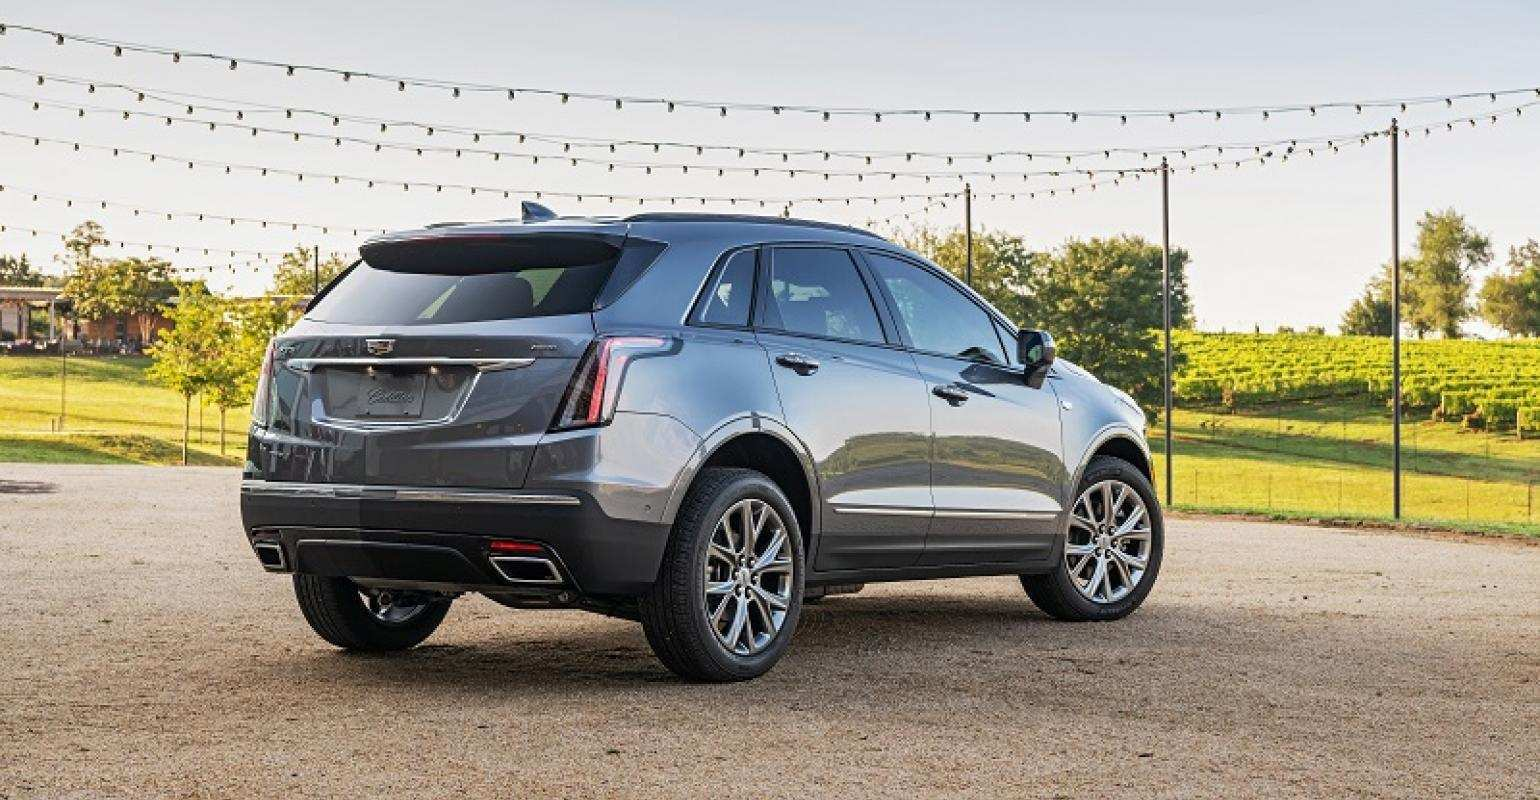 21 New 2020 Cadillac Xt5 Pictures Price Design And Review